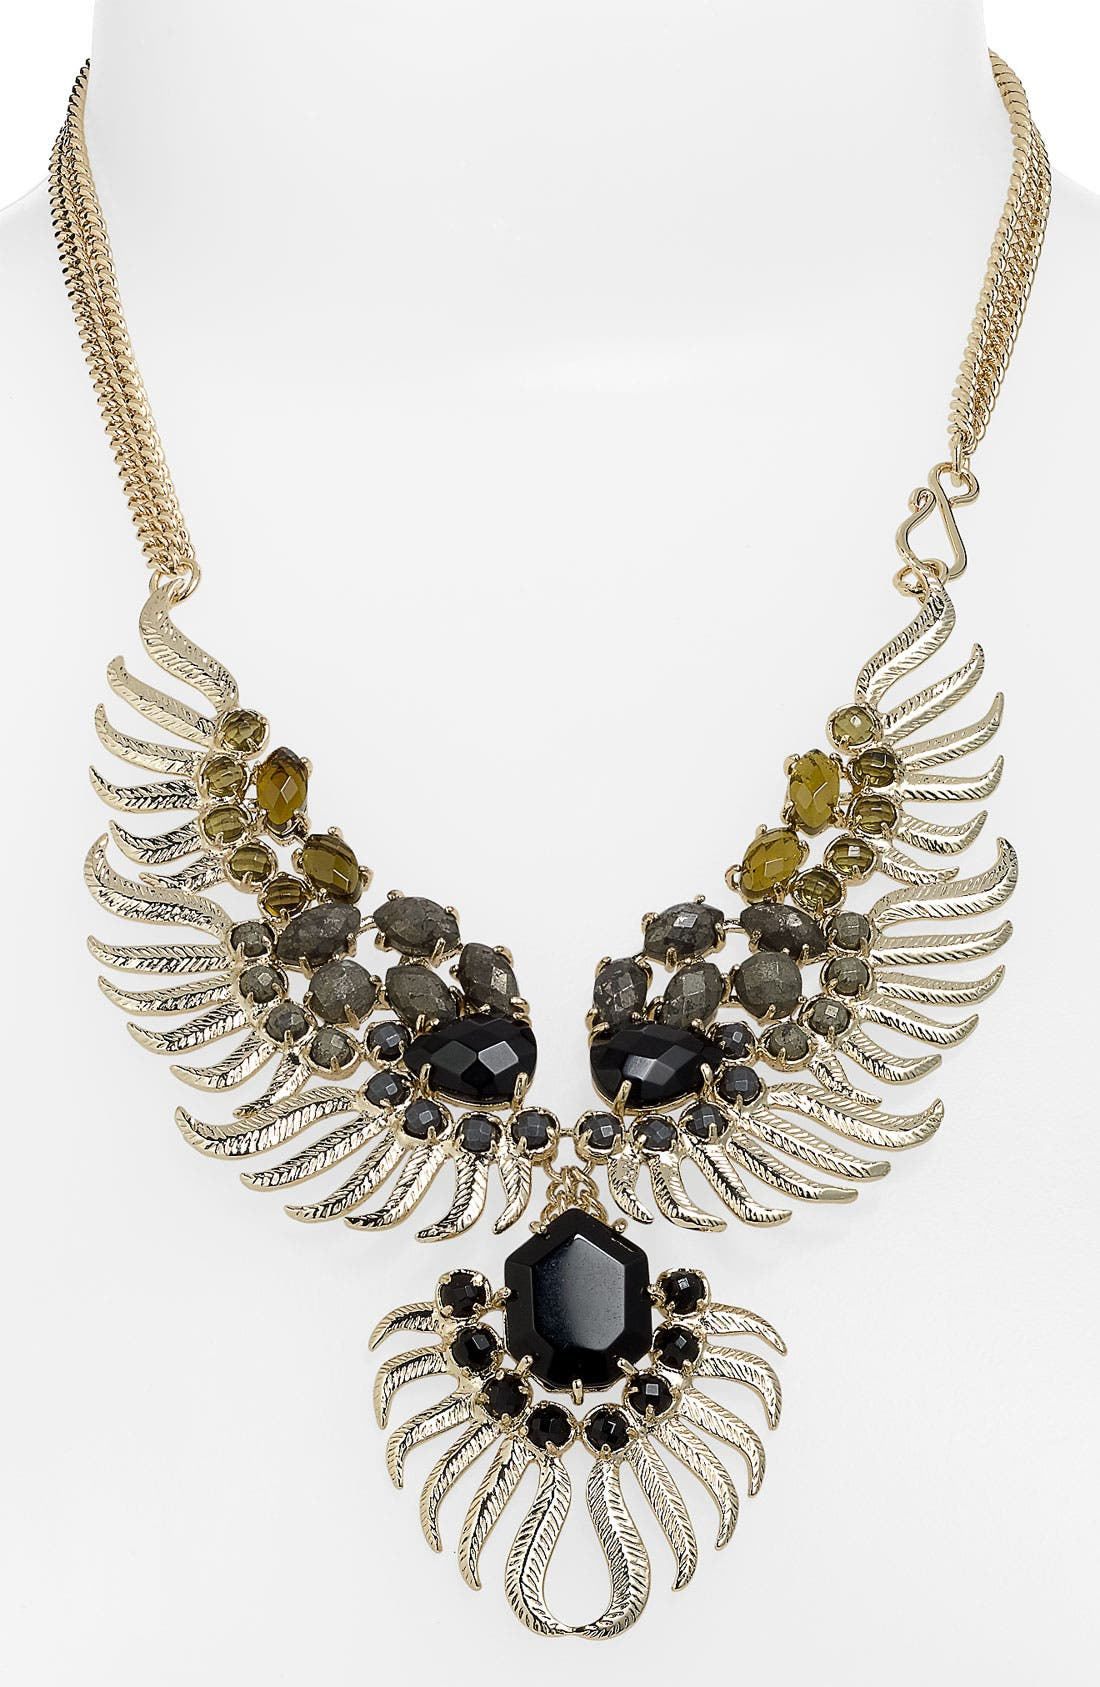 Main Image - Kendra Scott 'Fenton' Statement Necklace